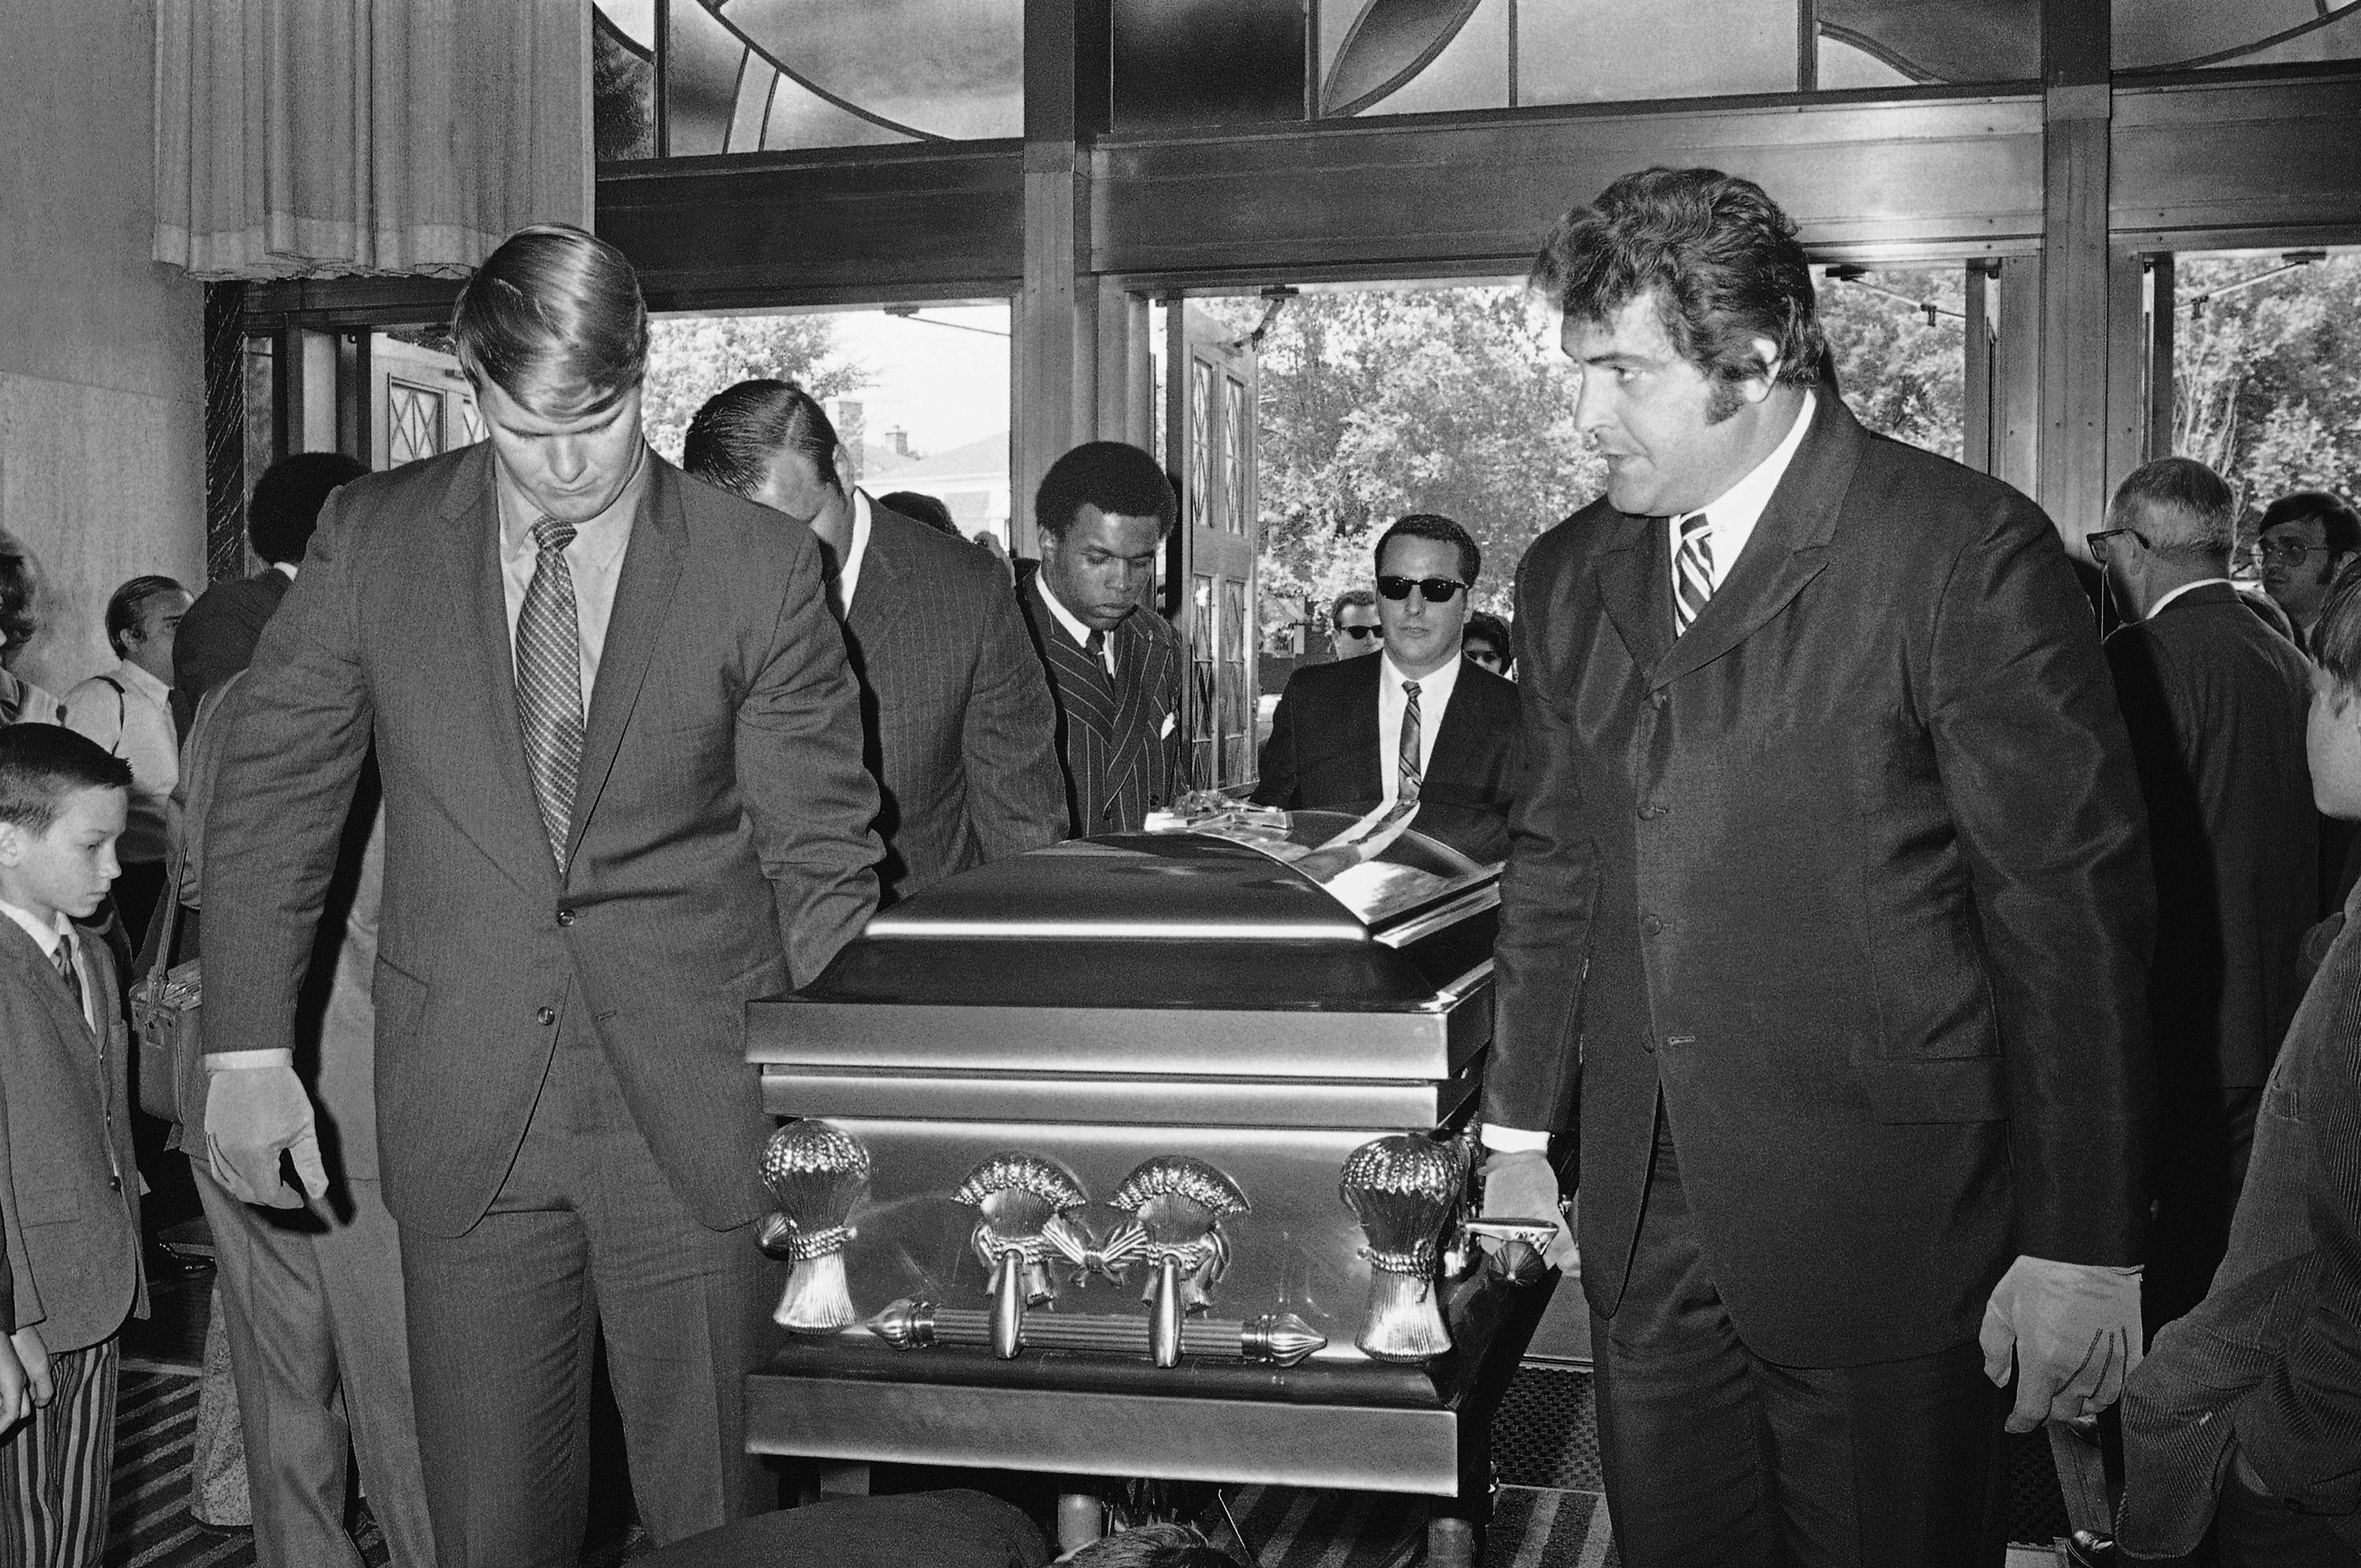 """FILE - In this June 19, 1970, file photo. Chicago Bears teammates of Brian Piccolo carry his coffin into Christ the King Church for funeral services in Chicago. From left, front to back, are Randy Jackson, Dick Butkus, and Gale Sayer. Ed O'Bradovich is at right. Hall of Famer Gale Sayers, who made his mark as one of the NFL's best all-purpose running backs and was later celebrated for his enduring friendship with a Chicago Bears teammate with cancer, has died. He was 77. Nicknamed """"The Kansas Comet"""" and considered among the best open-field runners the game has ever seen, Sayers died Wednesday, Sept. 23, 2020, according to the Pro Football Hall of Fame. (AP Photo/File)"""